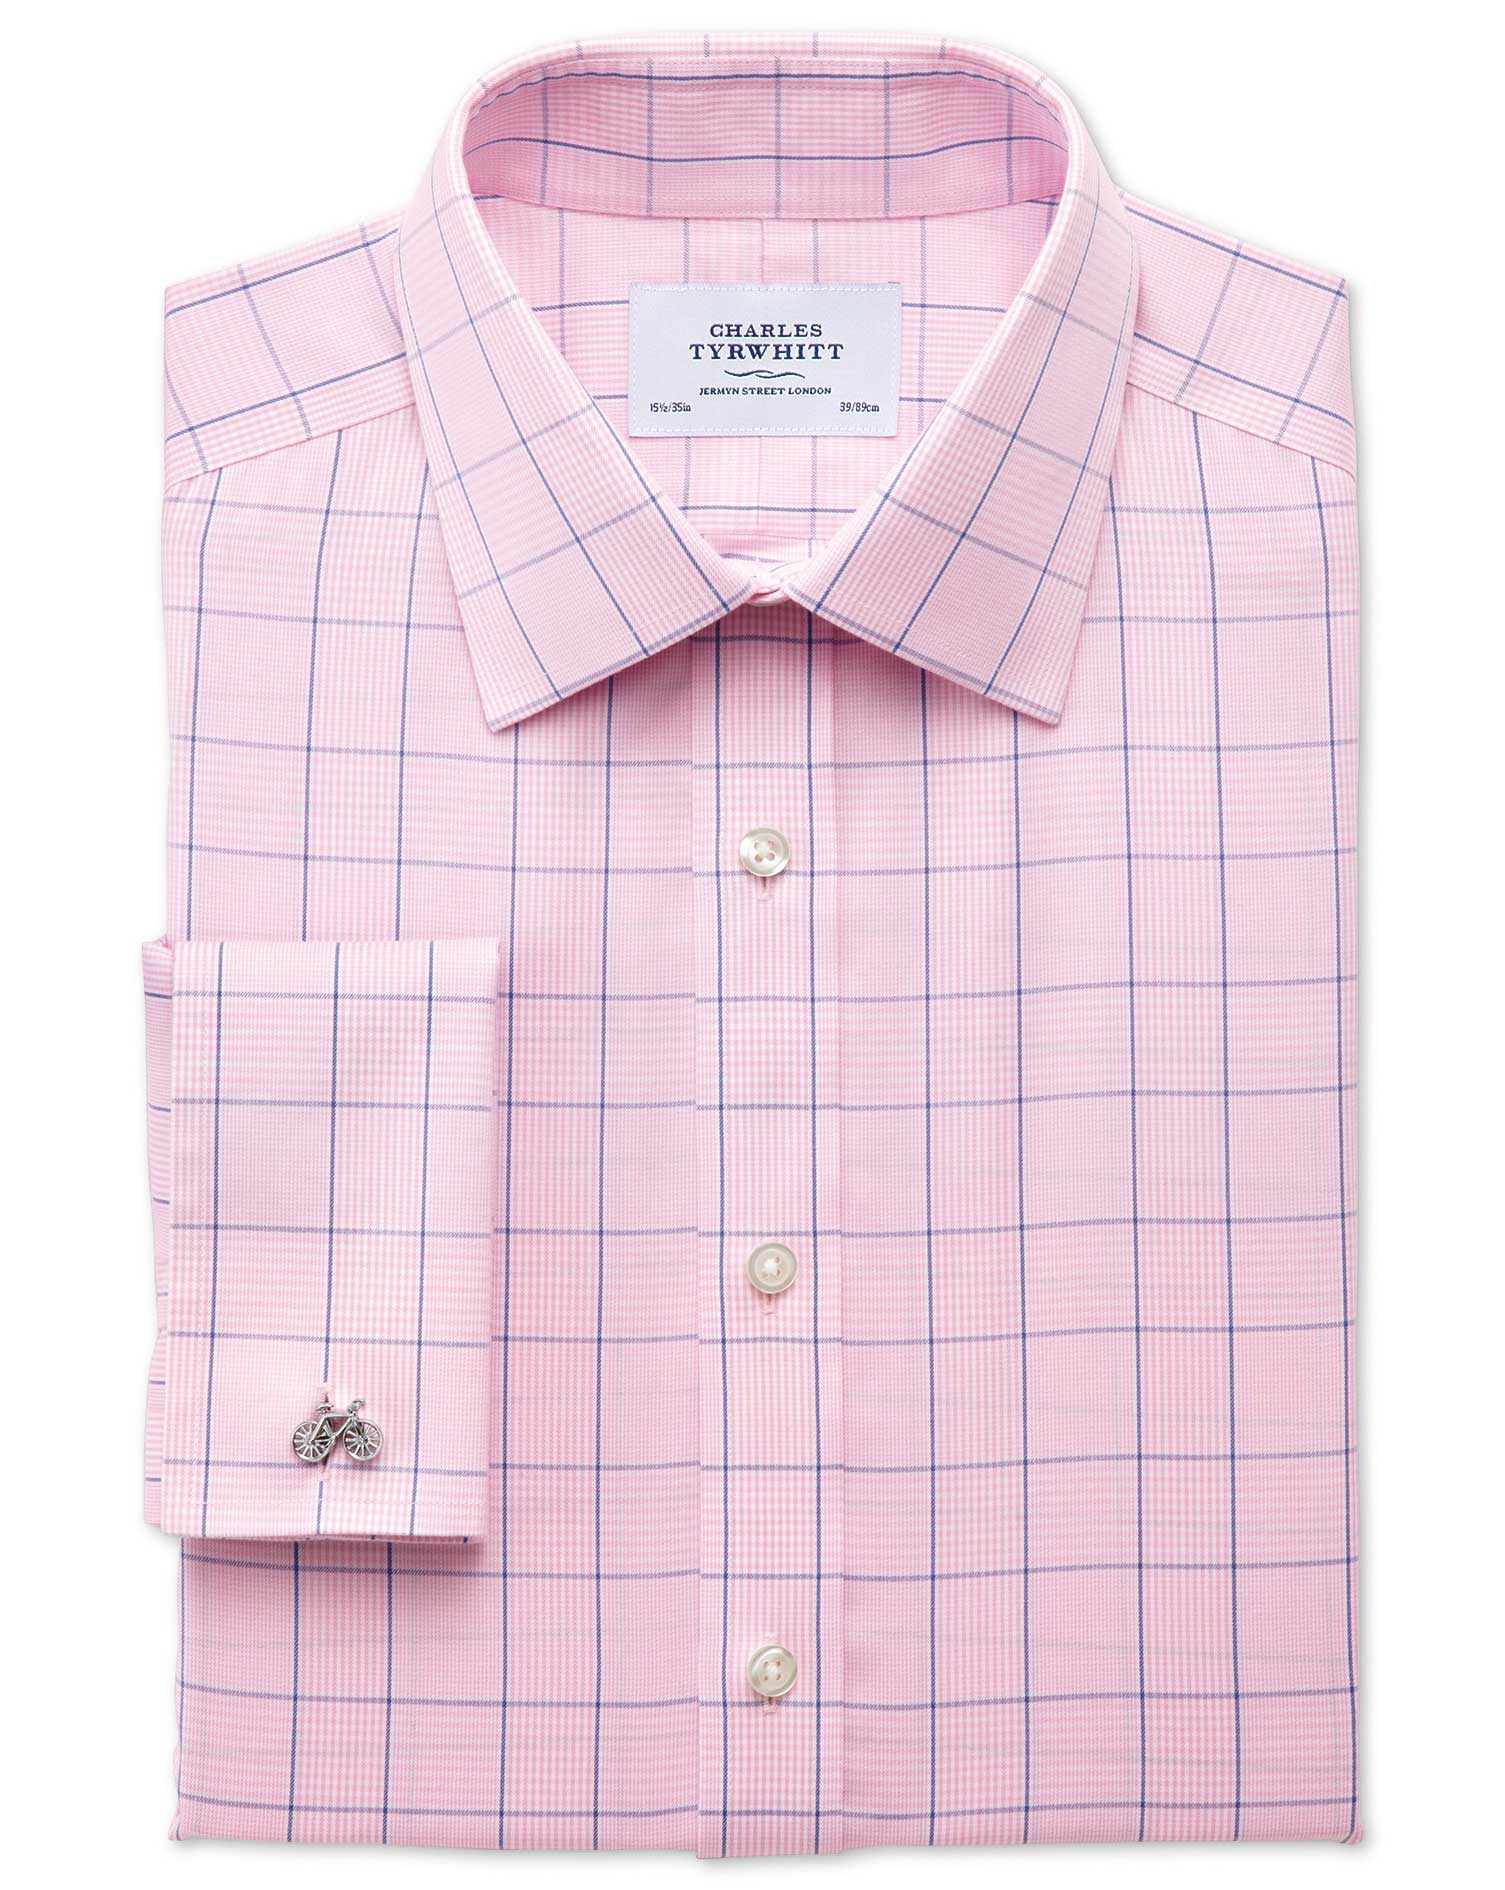 Extra Slim Fit Non-Iron Prince Of Wales Check Pink and Blue Cotton Formal Shirt Single Cuff Size 15.